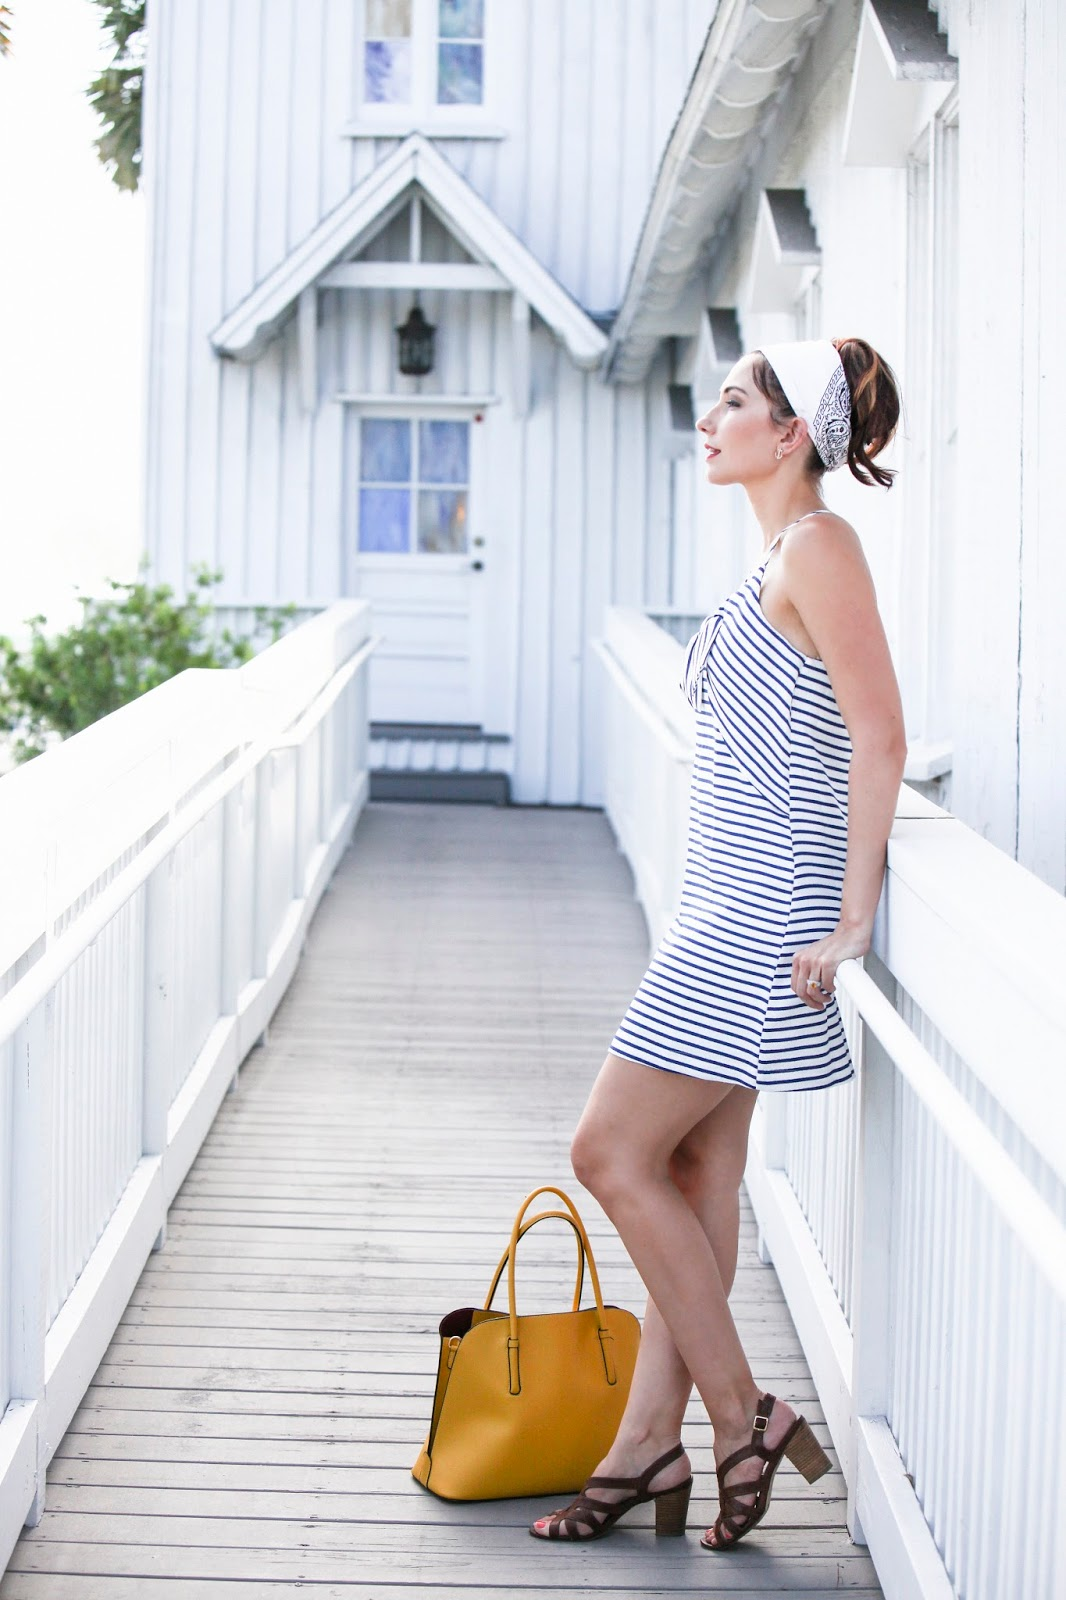 Amy West wears Nautical Stripes in this Ahoy Dress by Maeve